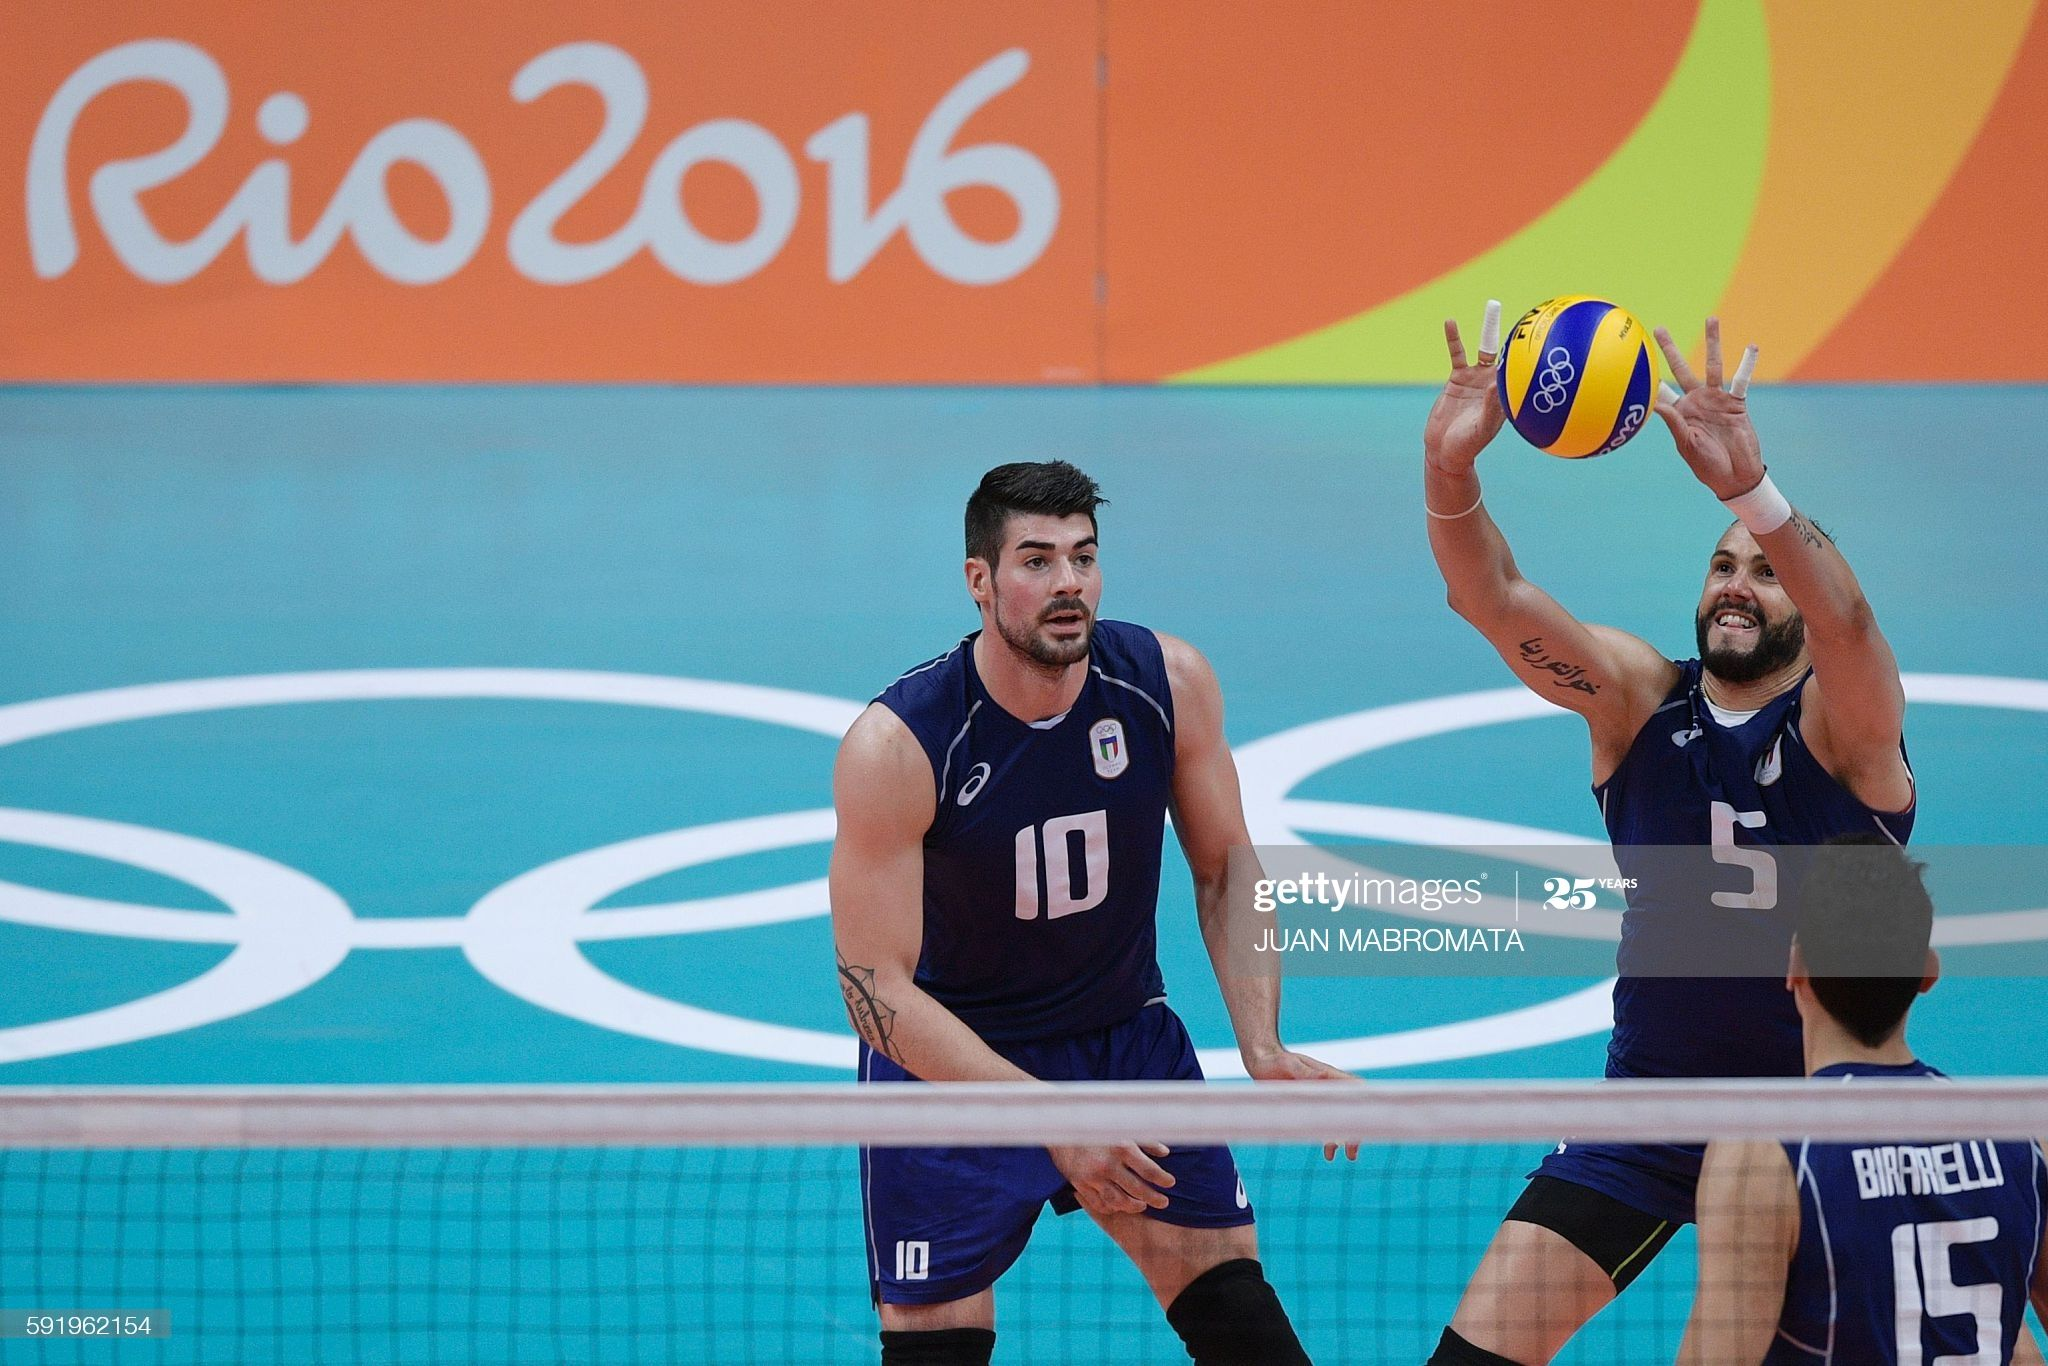 Italy S Osmany Juantorena Sets The Ball During The Men S Semi Final In 2020 Volleyball Images Rio Olympics 2016 2016 Olympic Games